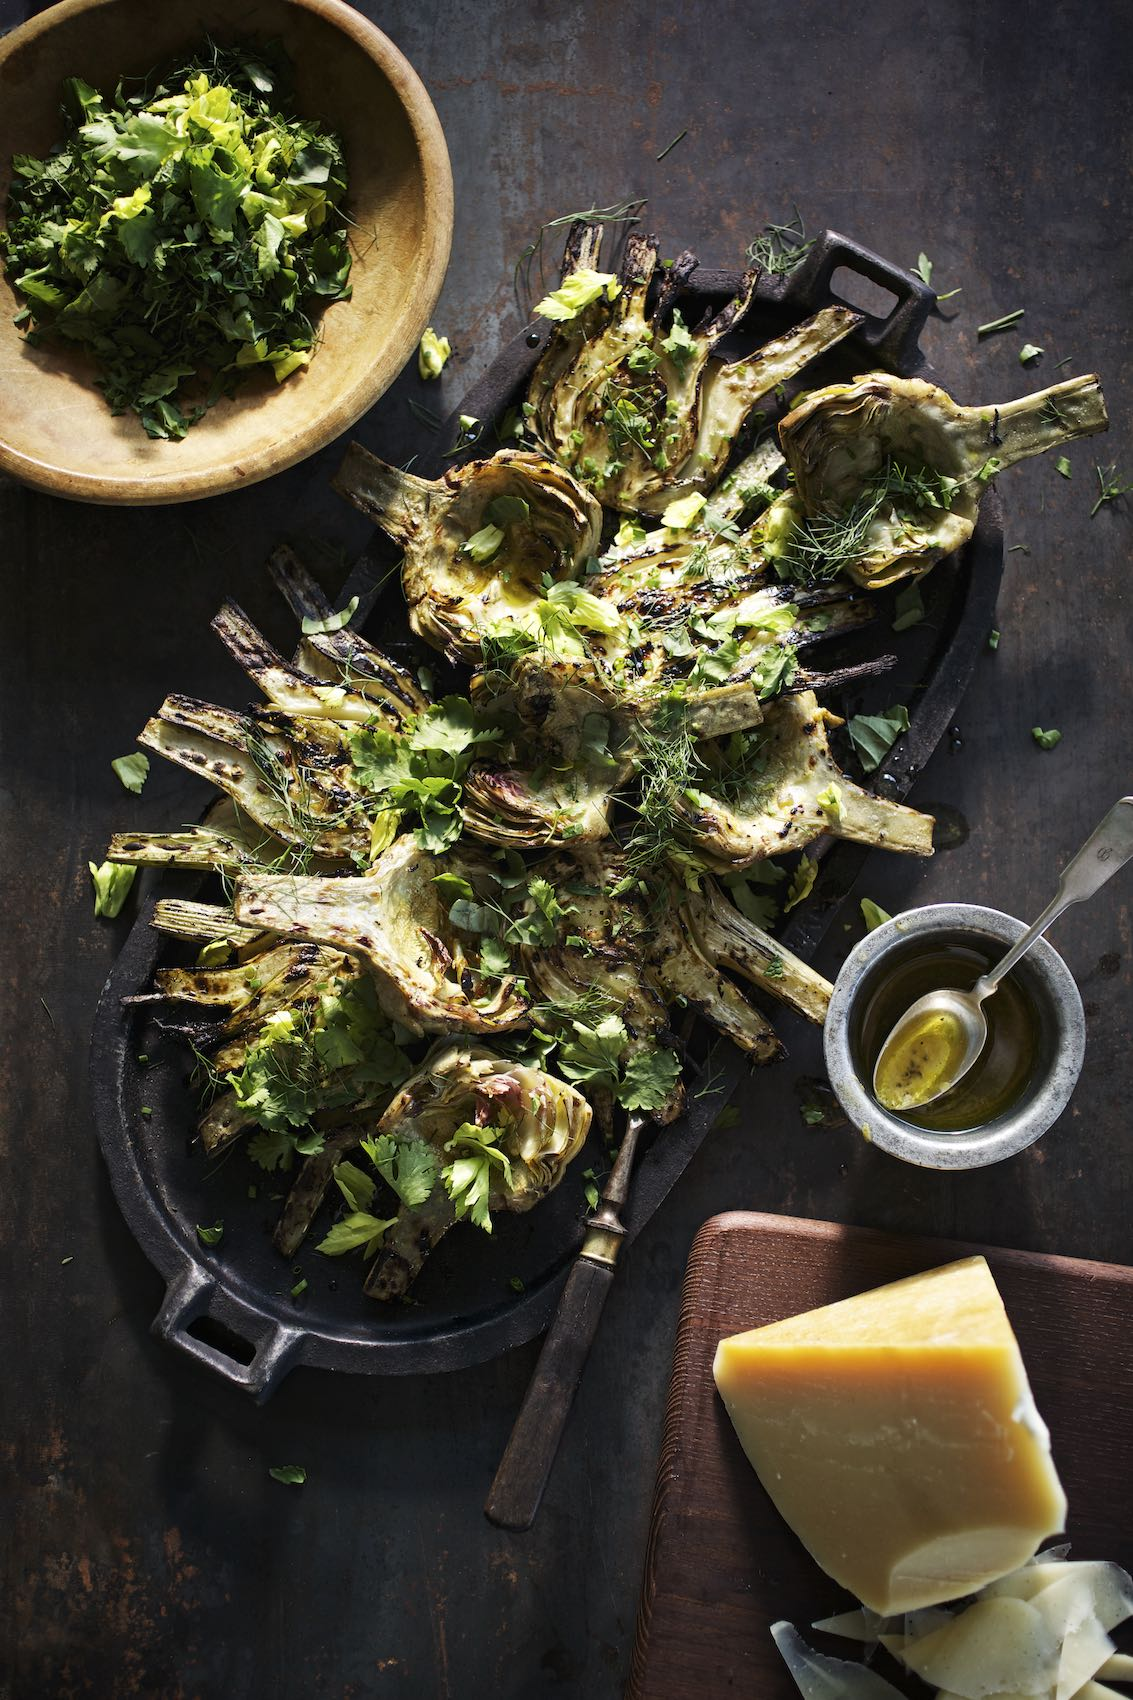 Jody Horton Photography - Grilled fennel and artichoke in cast iron pan on wood table.